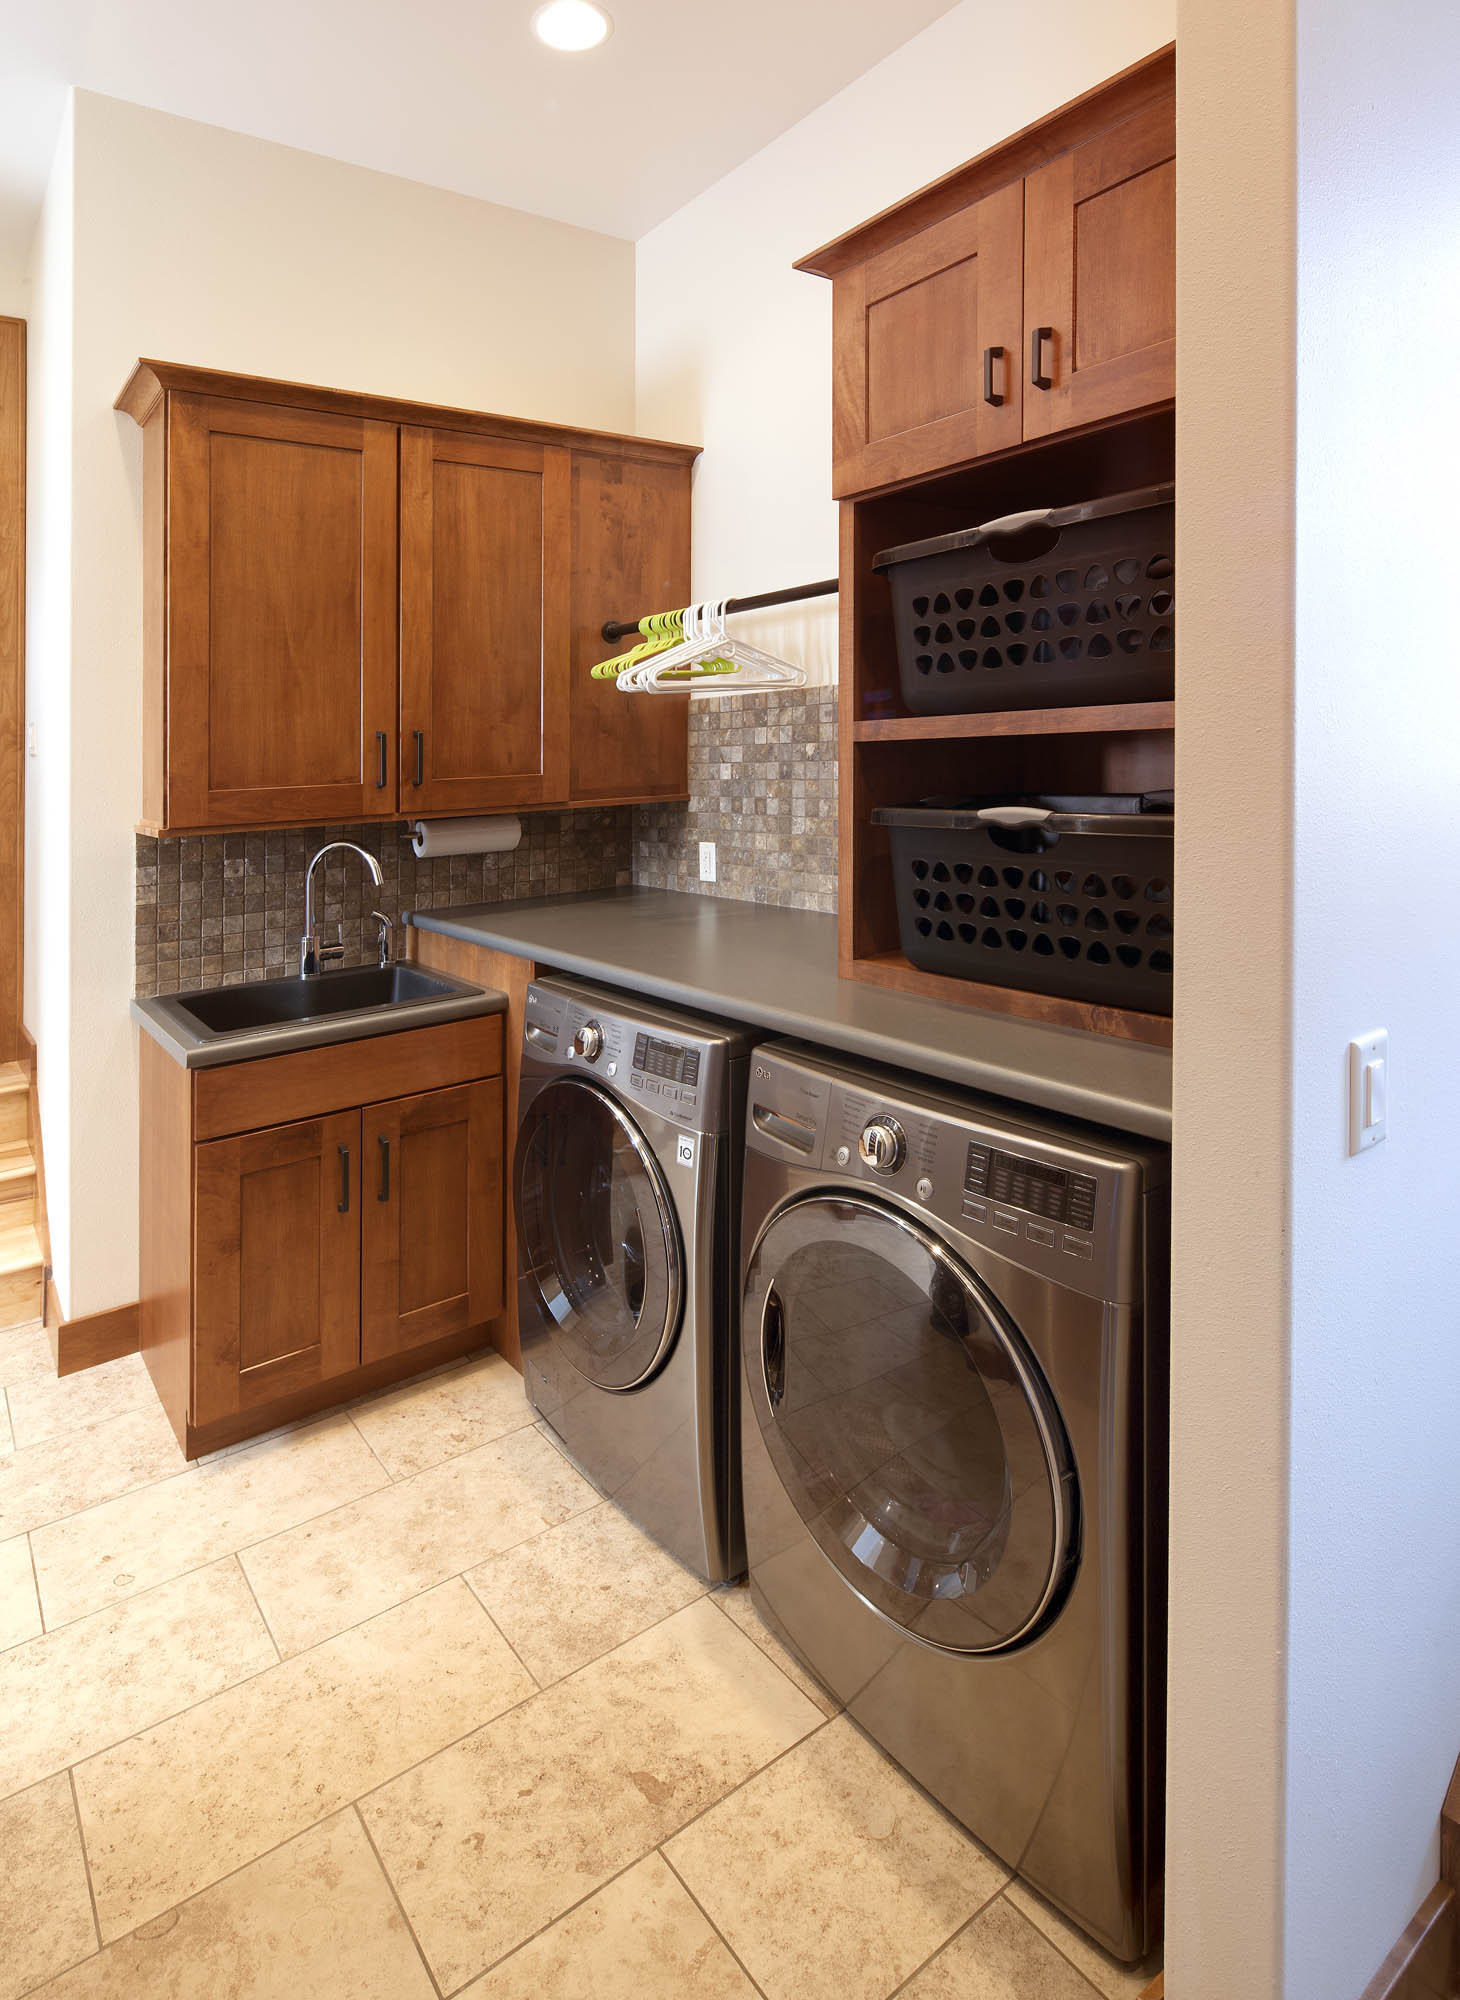 Laundry | Triple Crown Cabinetry & Millwork on Laundry Cabinets  id=77701